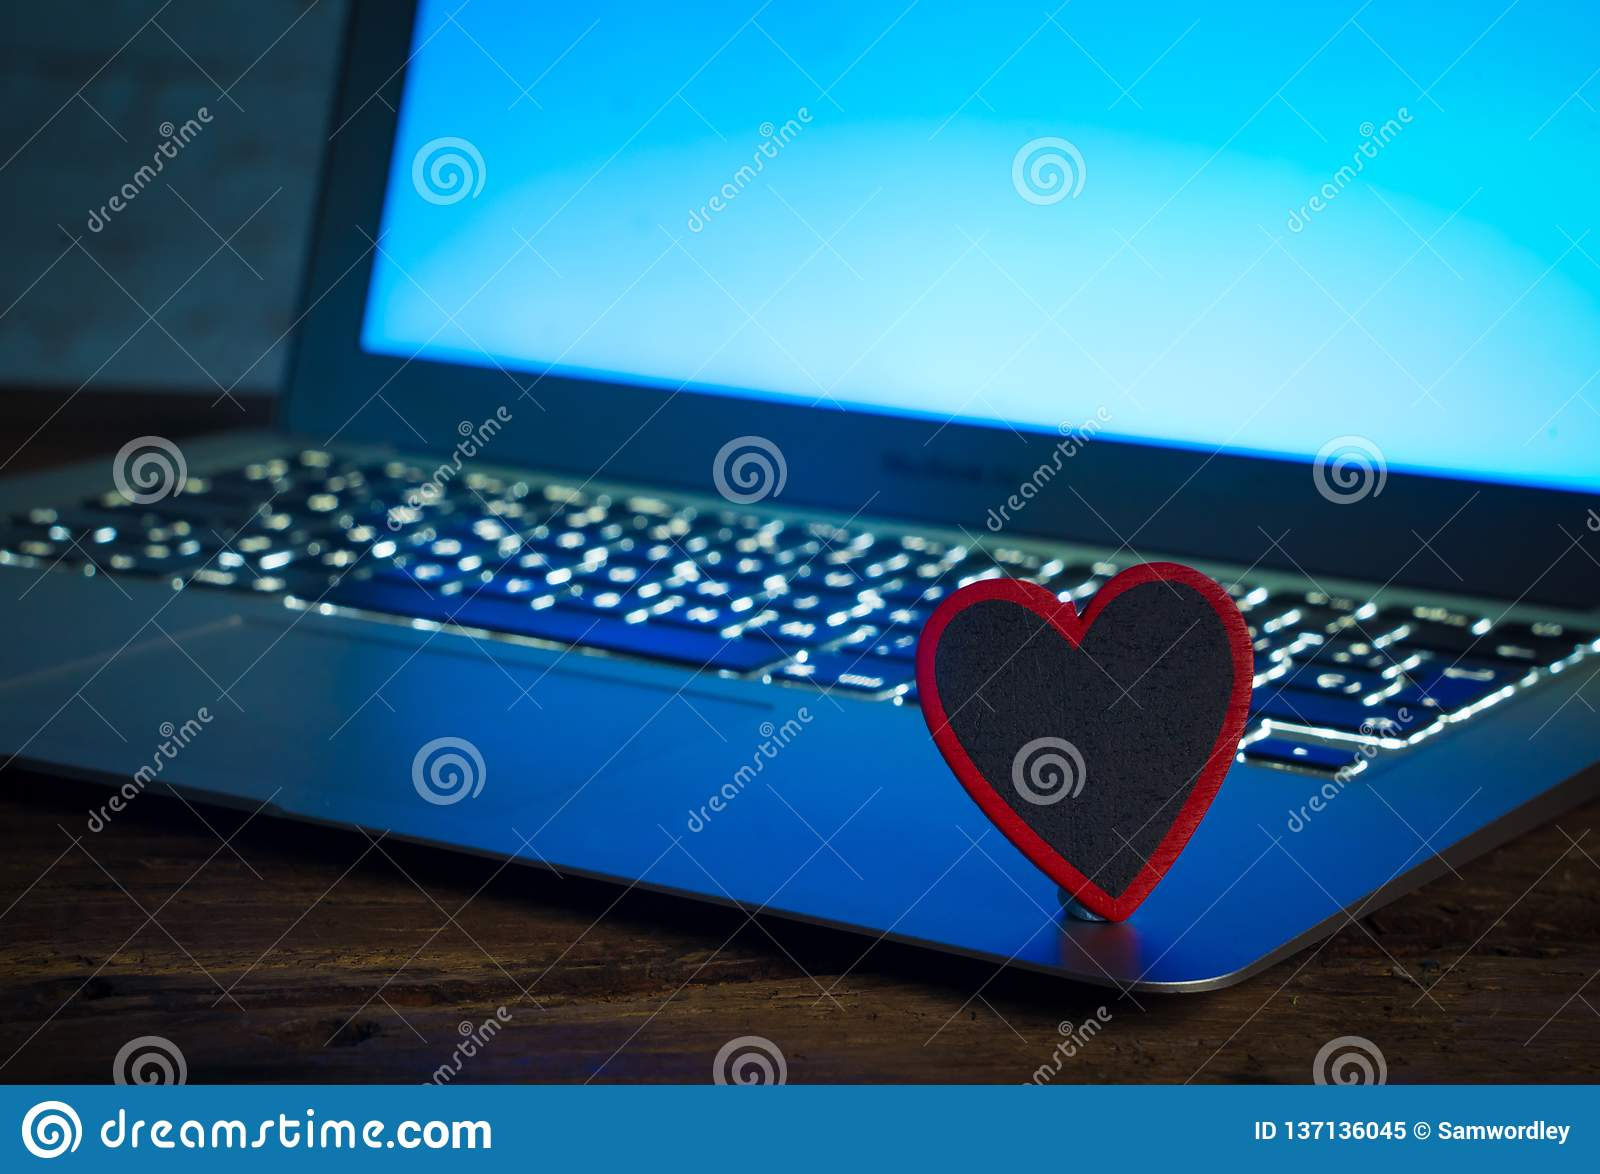 Love connection dating online